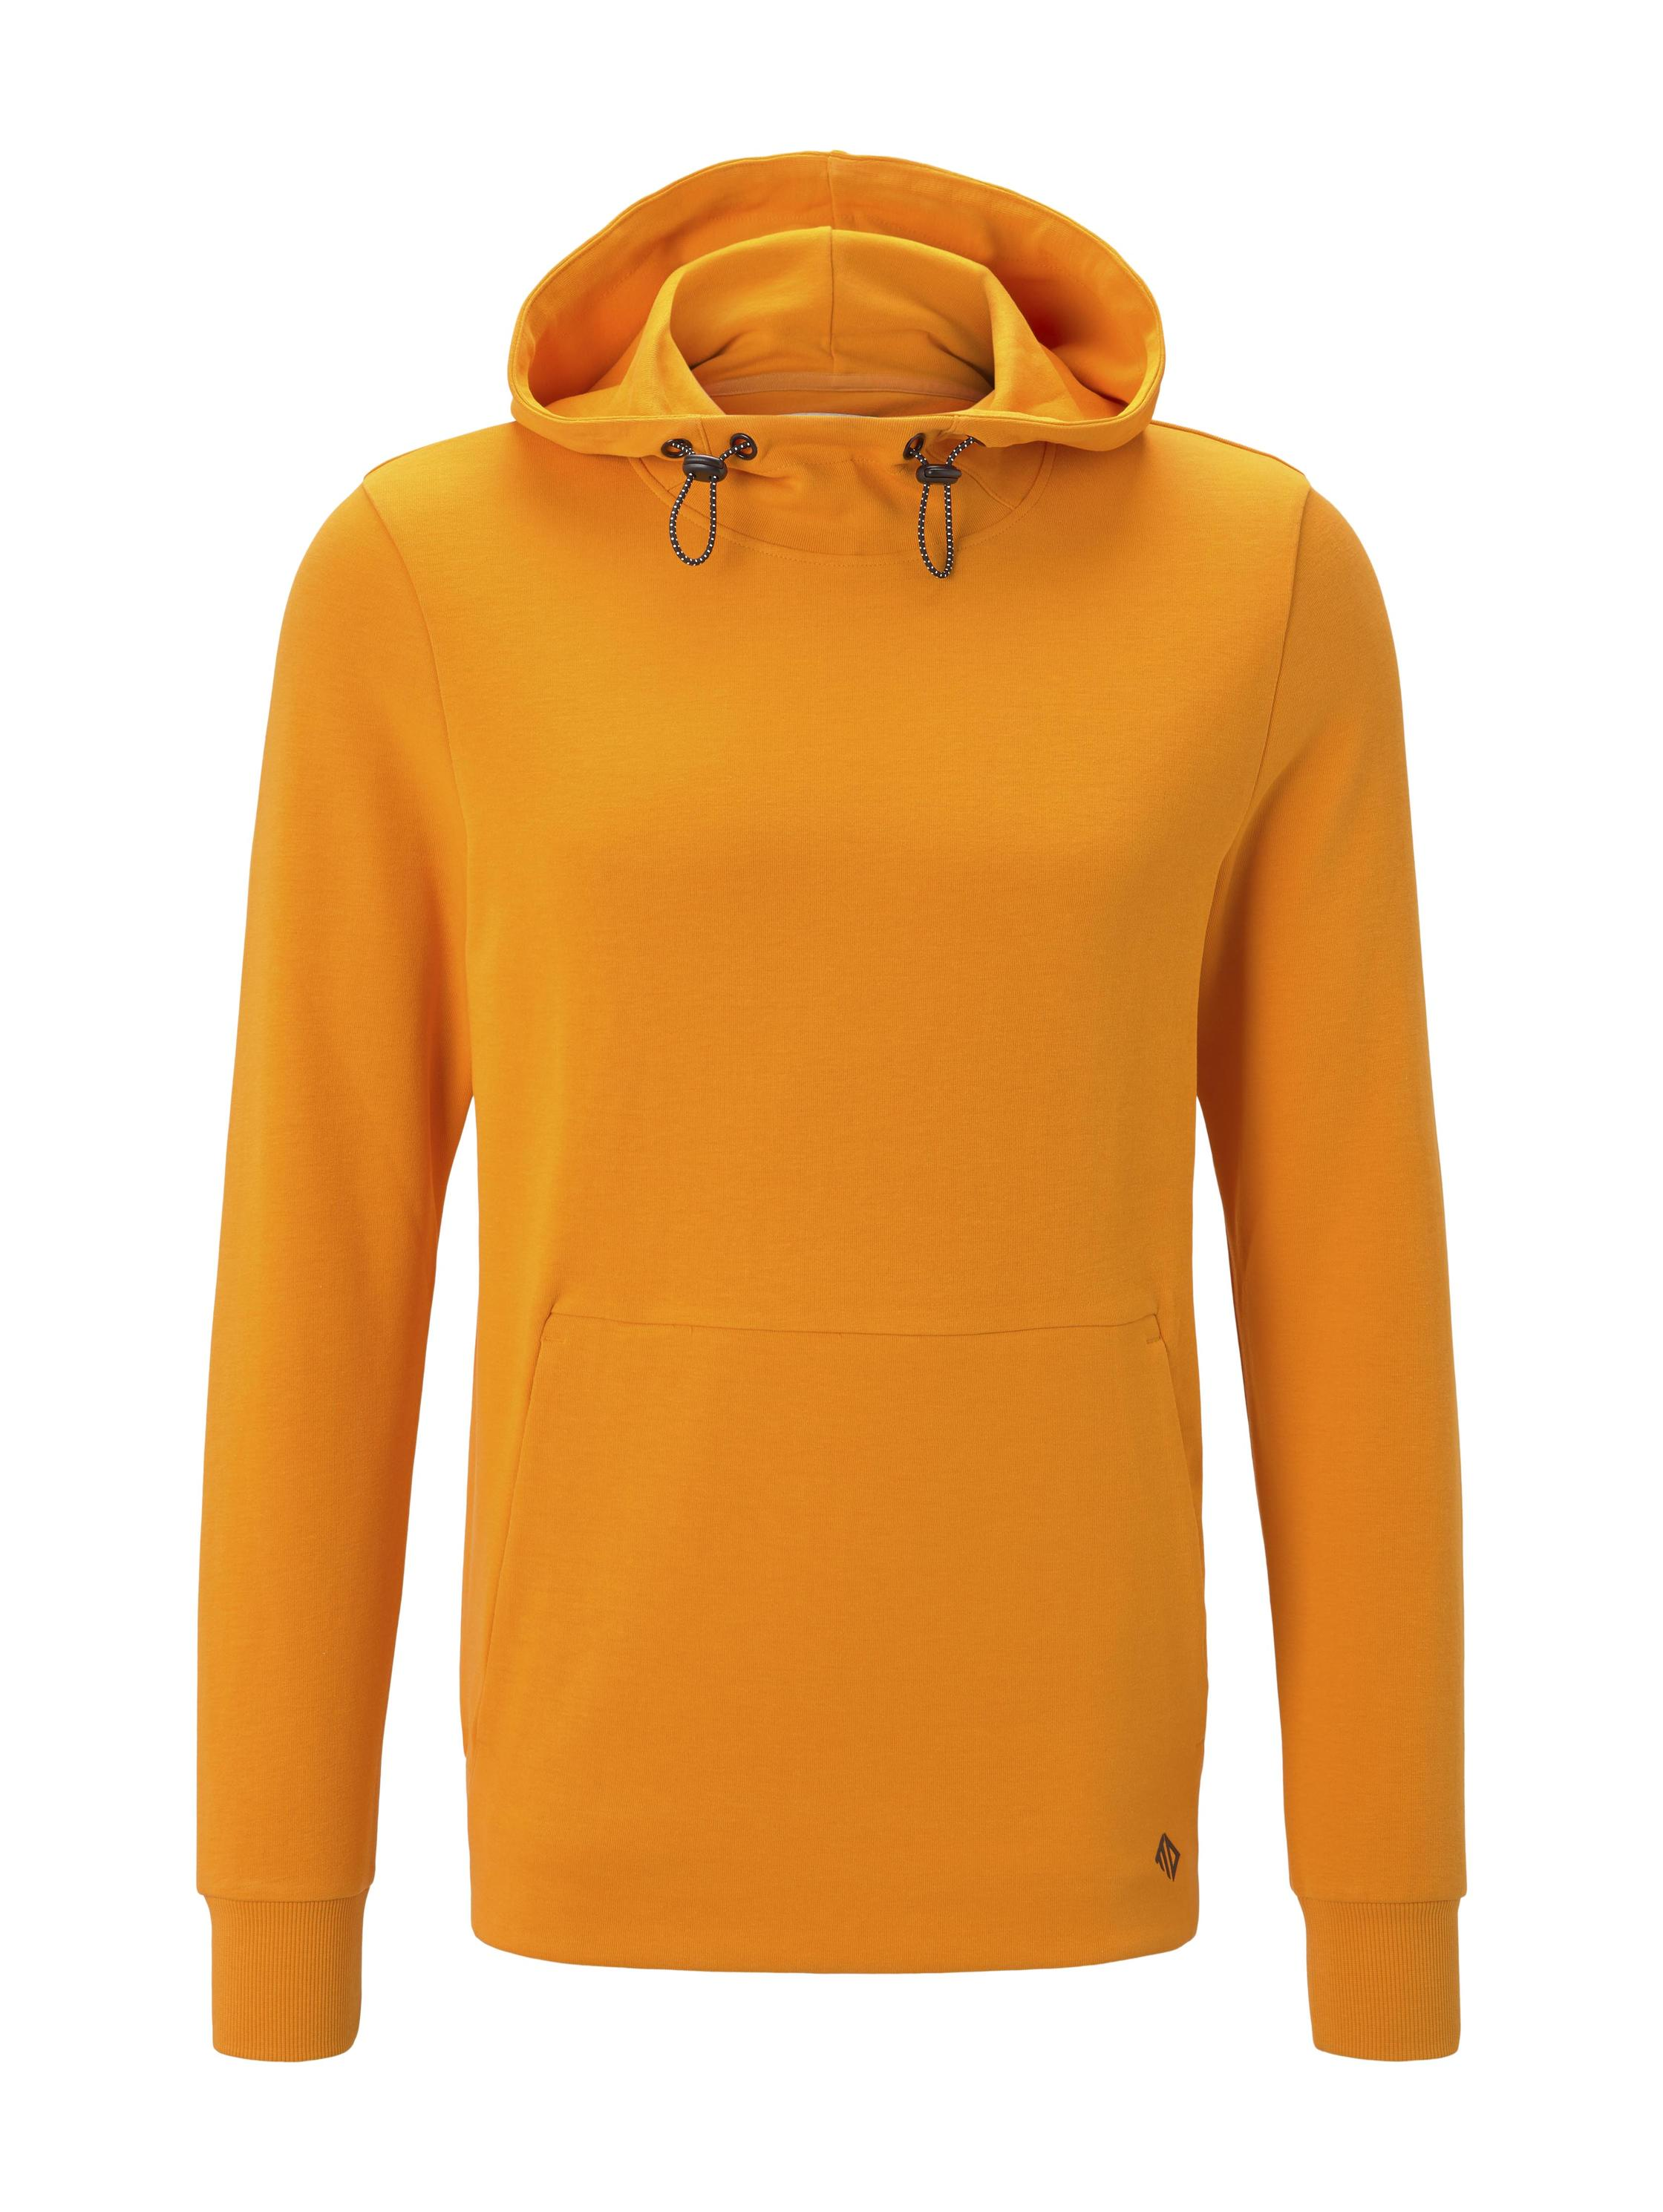 hoody with special fabric, goldfish orange